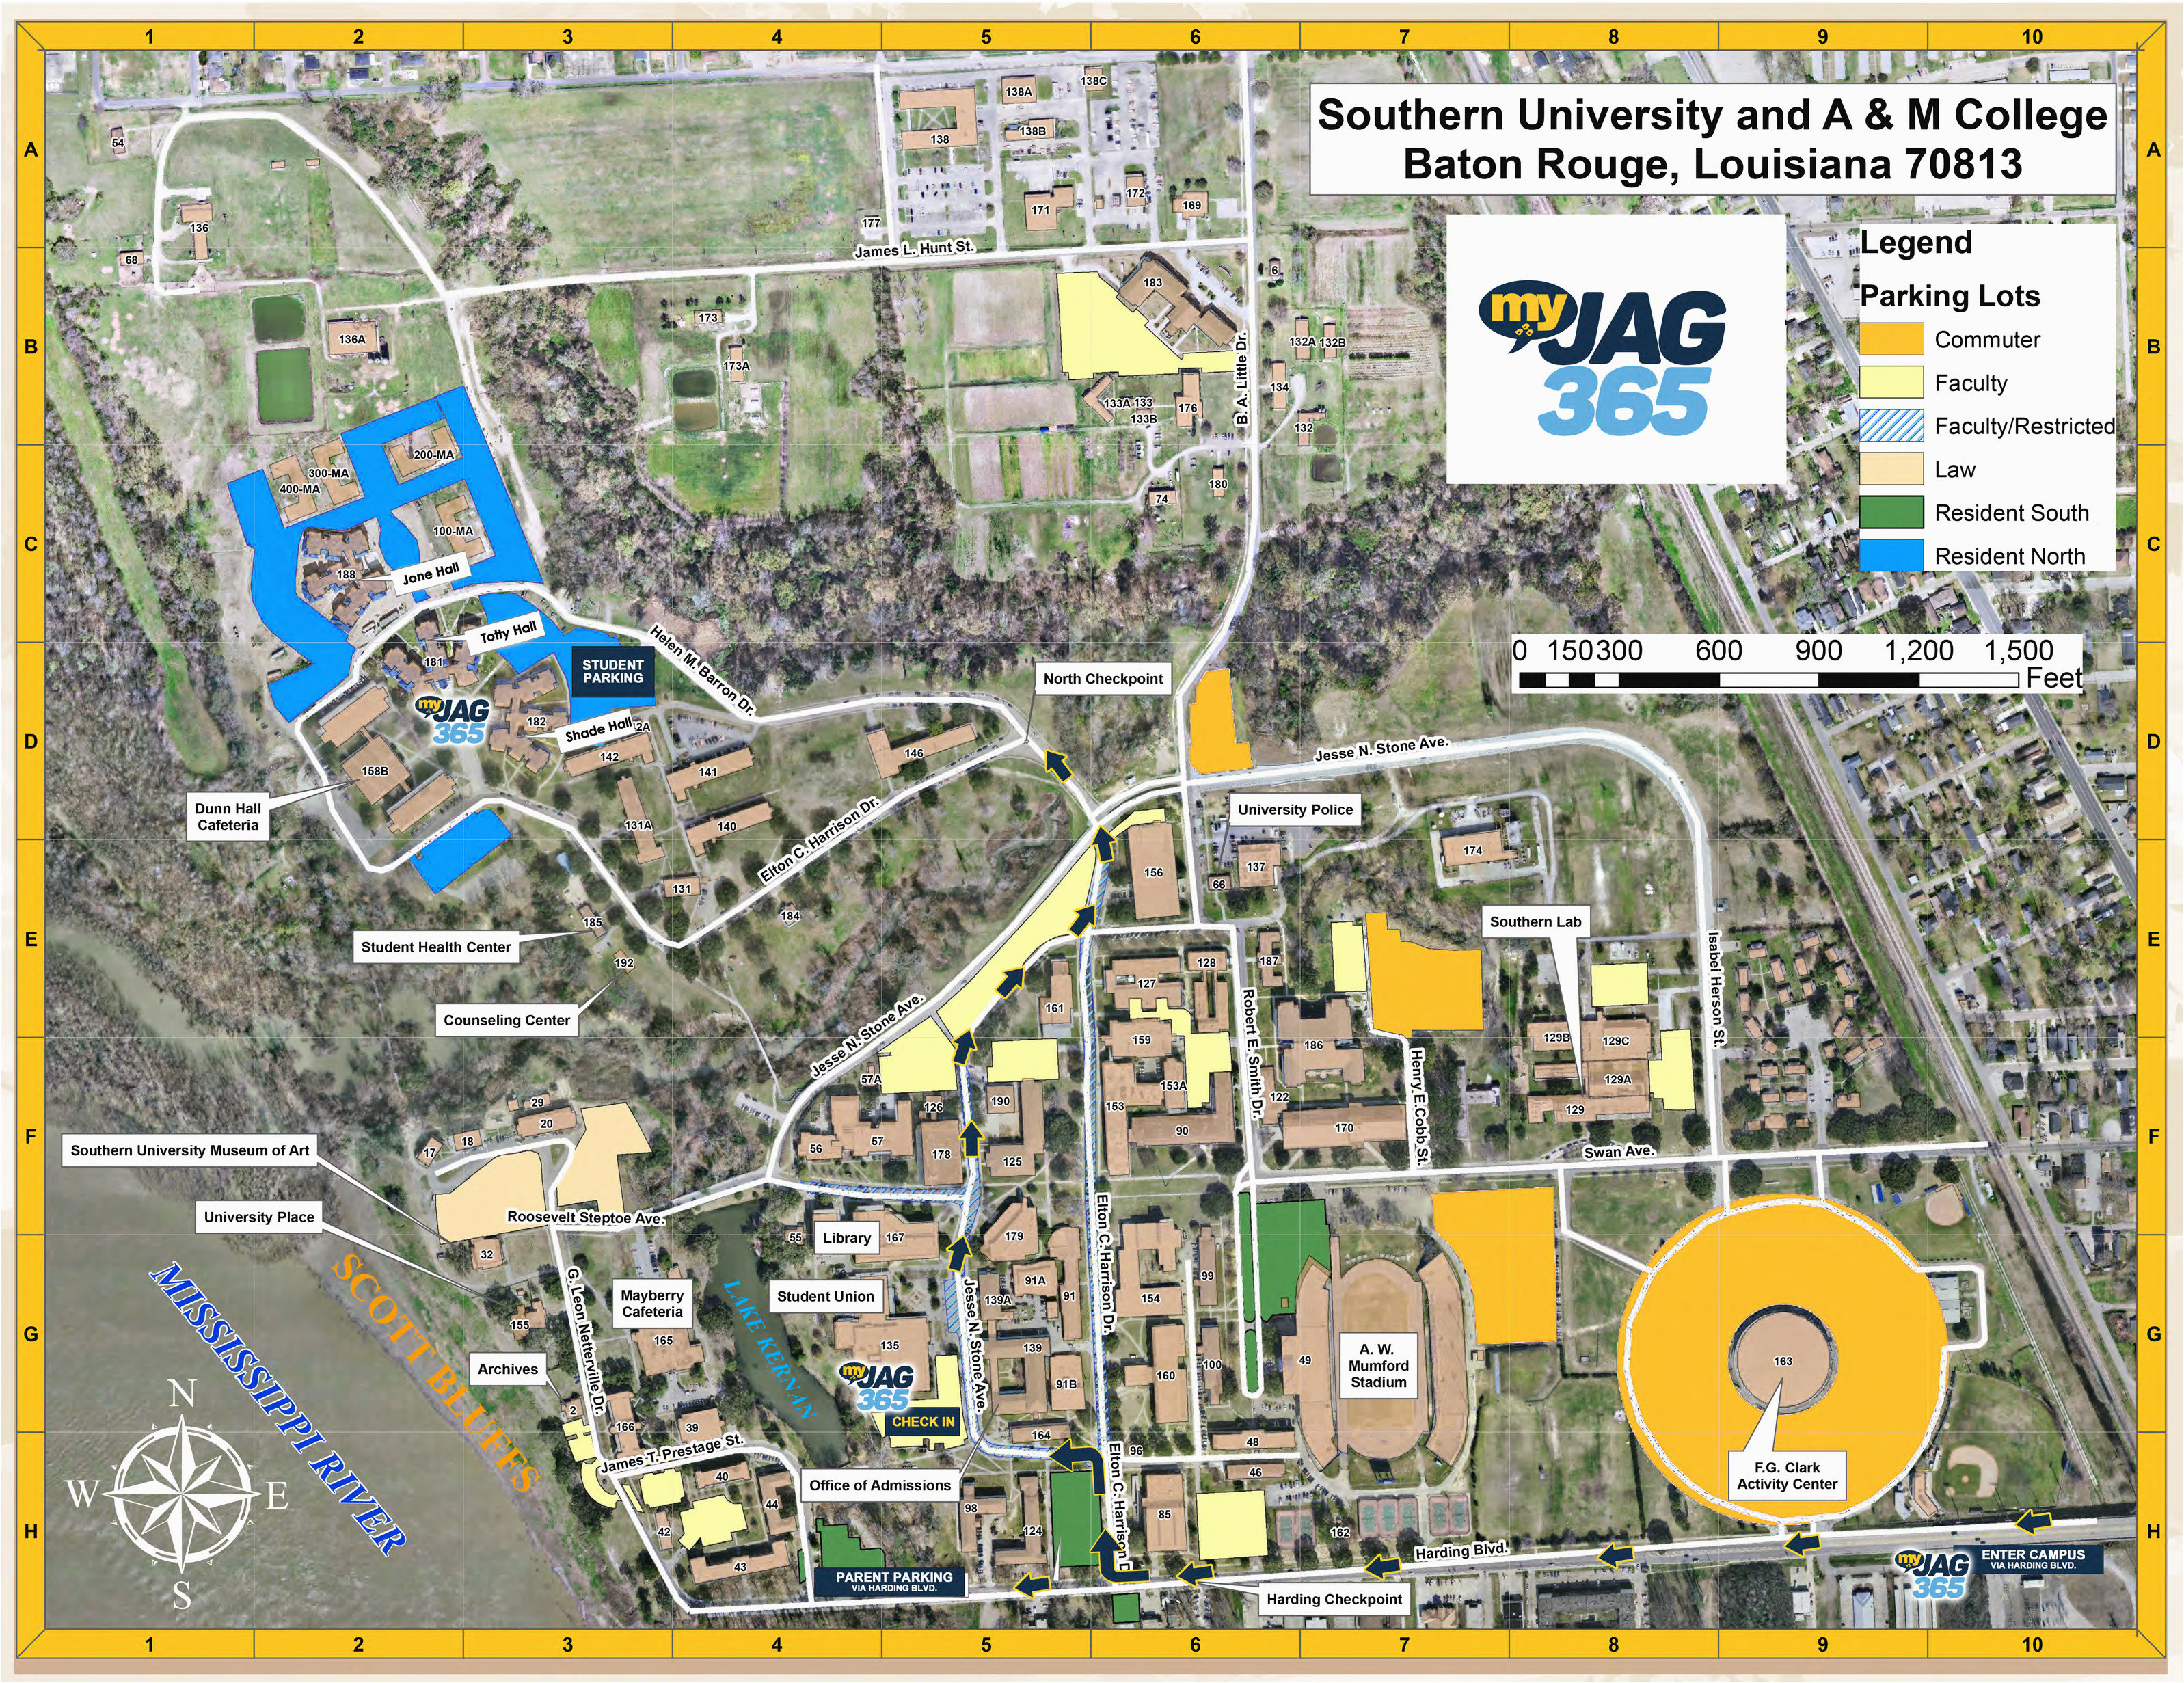 Georgia State University Campus Map Campus Map southern ... on gsu campus map, skagit college campus map, arizona western college campus map, cisco college campus map, art institute of dallas campus map, unt health science center campus map, knoxville college campus map, baylor college of medicine campus map, manor college campus map, vernon college campus map, galveston haunted face, college of southern idaho campus map, south plains college map, georgia perimeter college campus map, alameda college campus map, oneonta college campus map, eastern arizona college campus map, lake michigan college campus map, clarendon college campus map, longview college campus map,